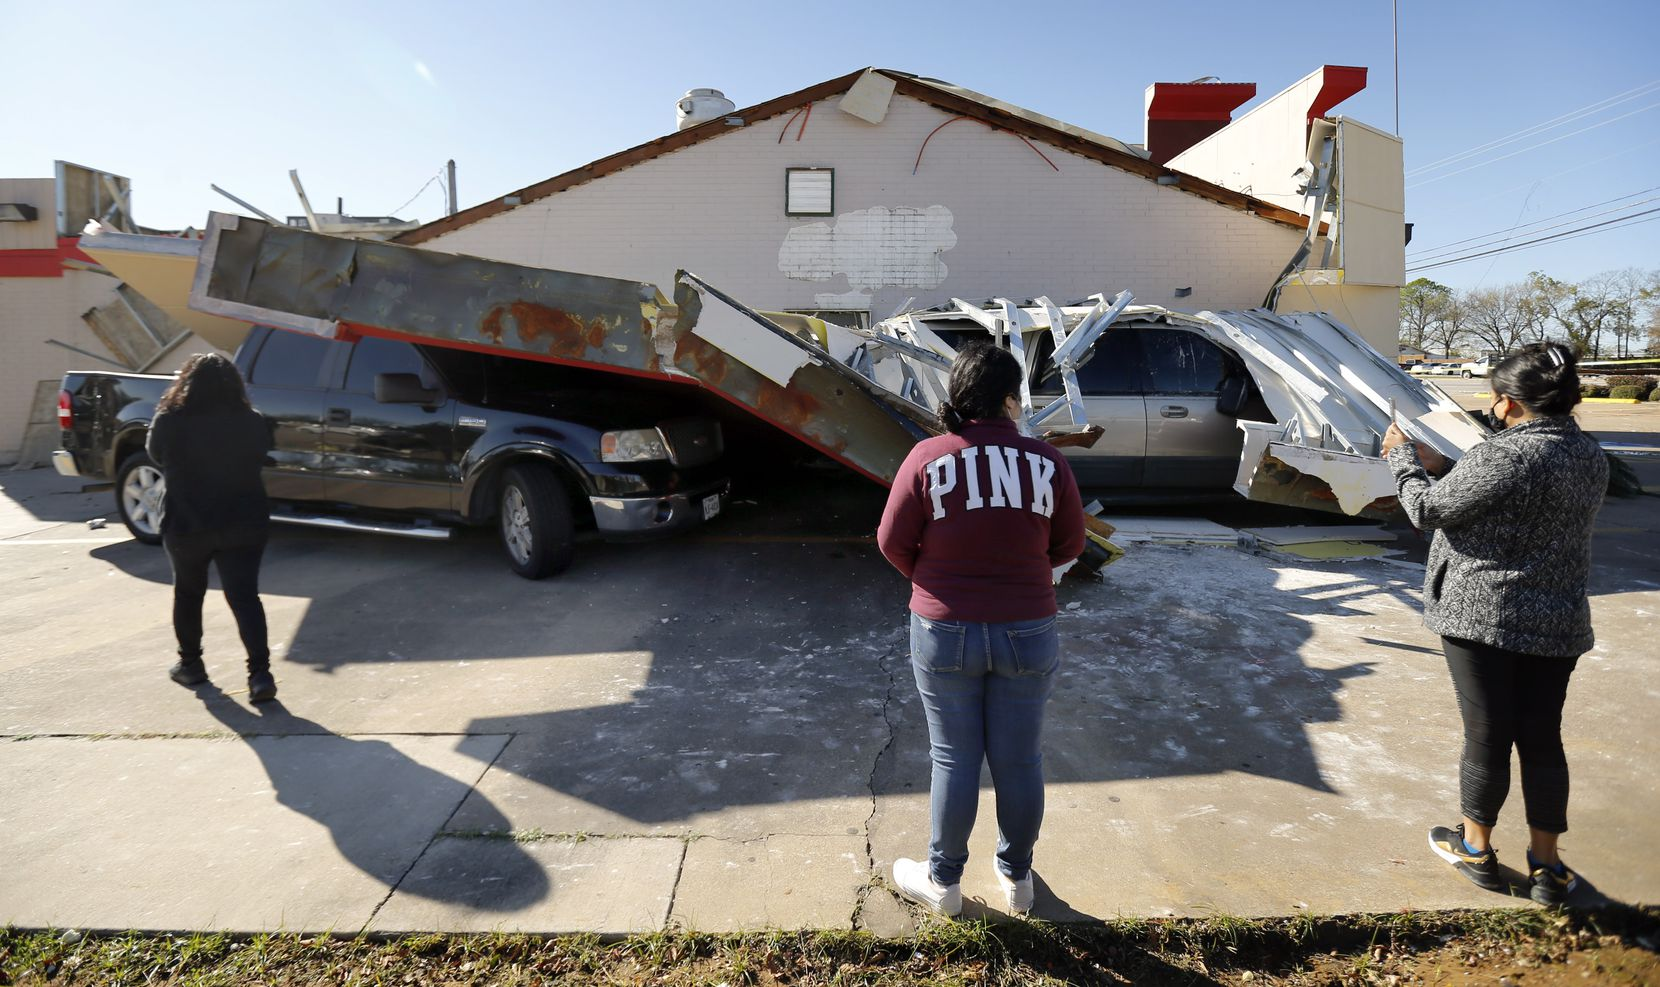 Burger Box restaurant employees (from left) Ana Espinoza, Jennifer Capado, and Maria Espinoza inspect the damage where two customers vehicles were trapped under the drive thru roof awning, Wednesday, November 24, 2020. A tornado-warned storm tore the roof off, trapping the drivers in their vehicles on S. Cooper St.